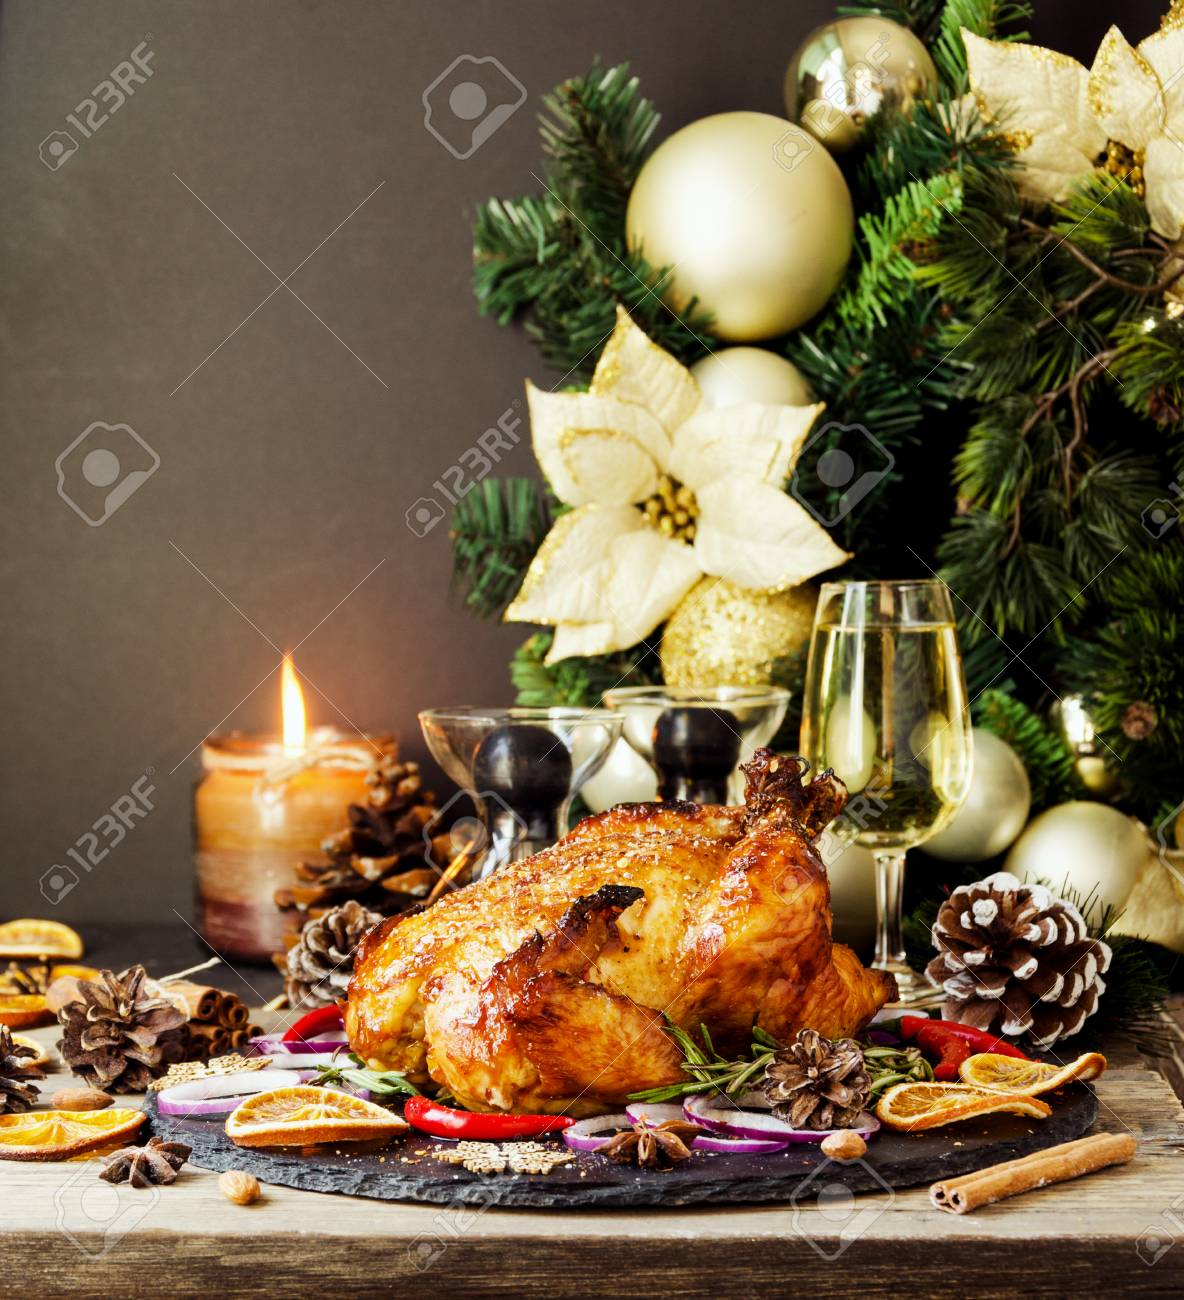 Roast Chicken Or Turkey For Christmas And New Year Thanksgiving